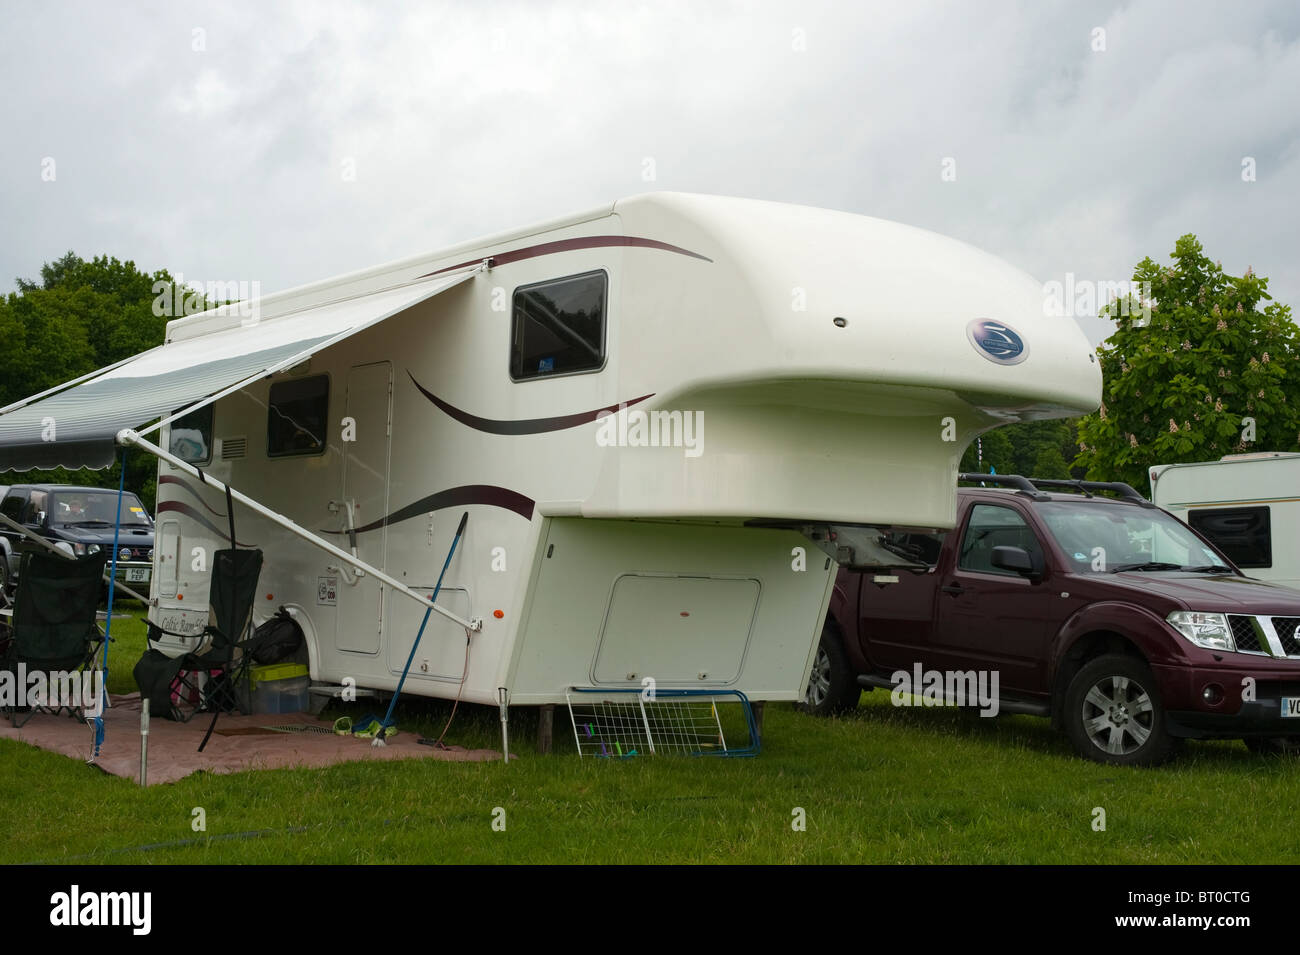 Fifth 5th Wheel Co Trailer Caravan roll out Awning Stock ...